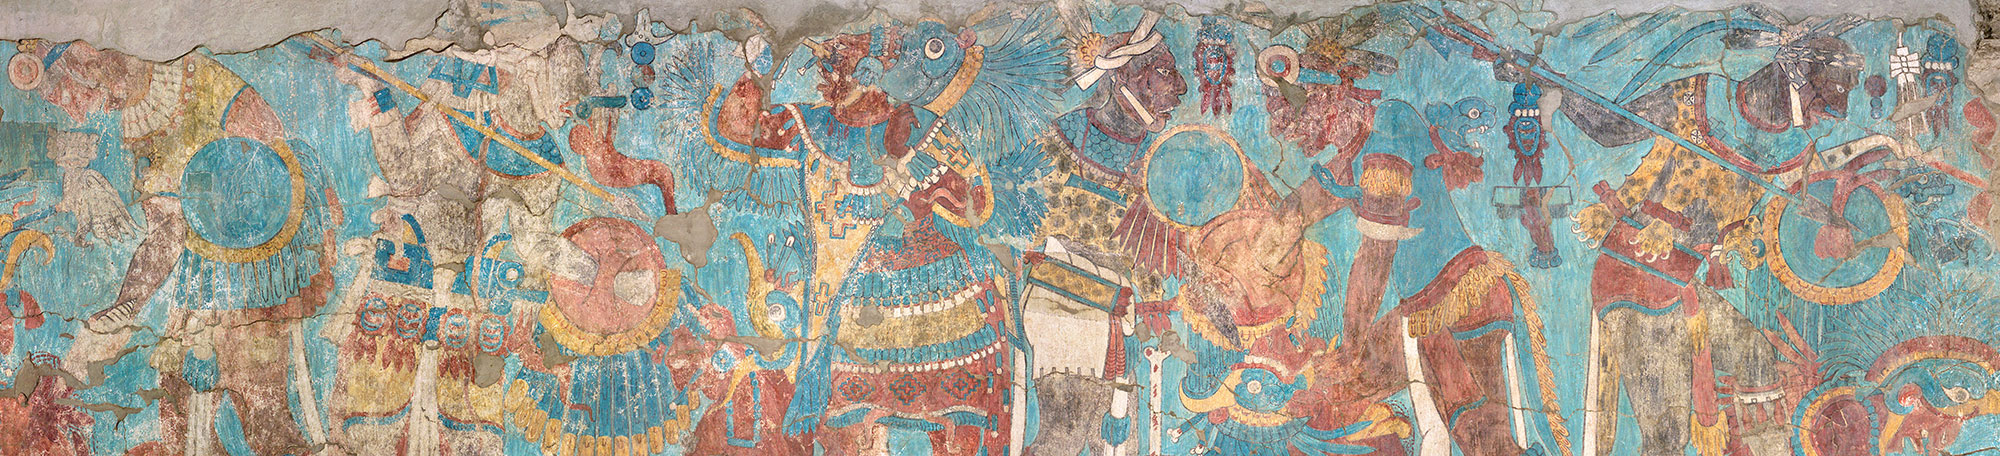 Battle Mural from the caves of Cacaxtla, Mexico